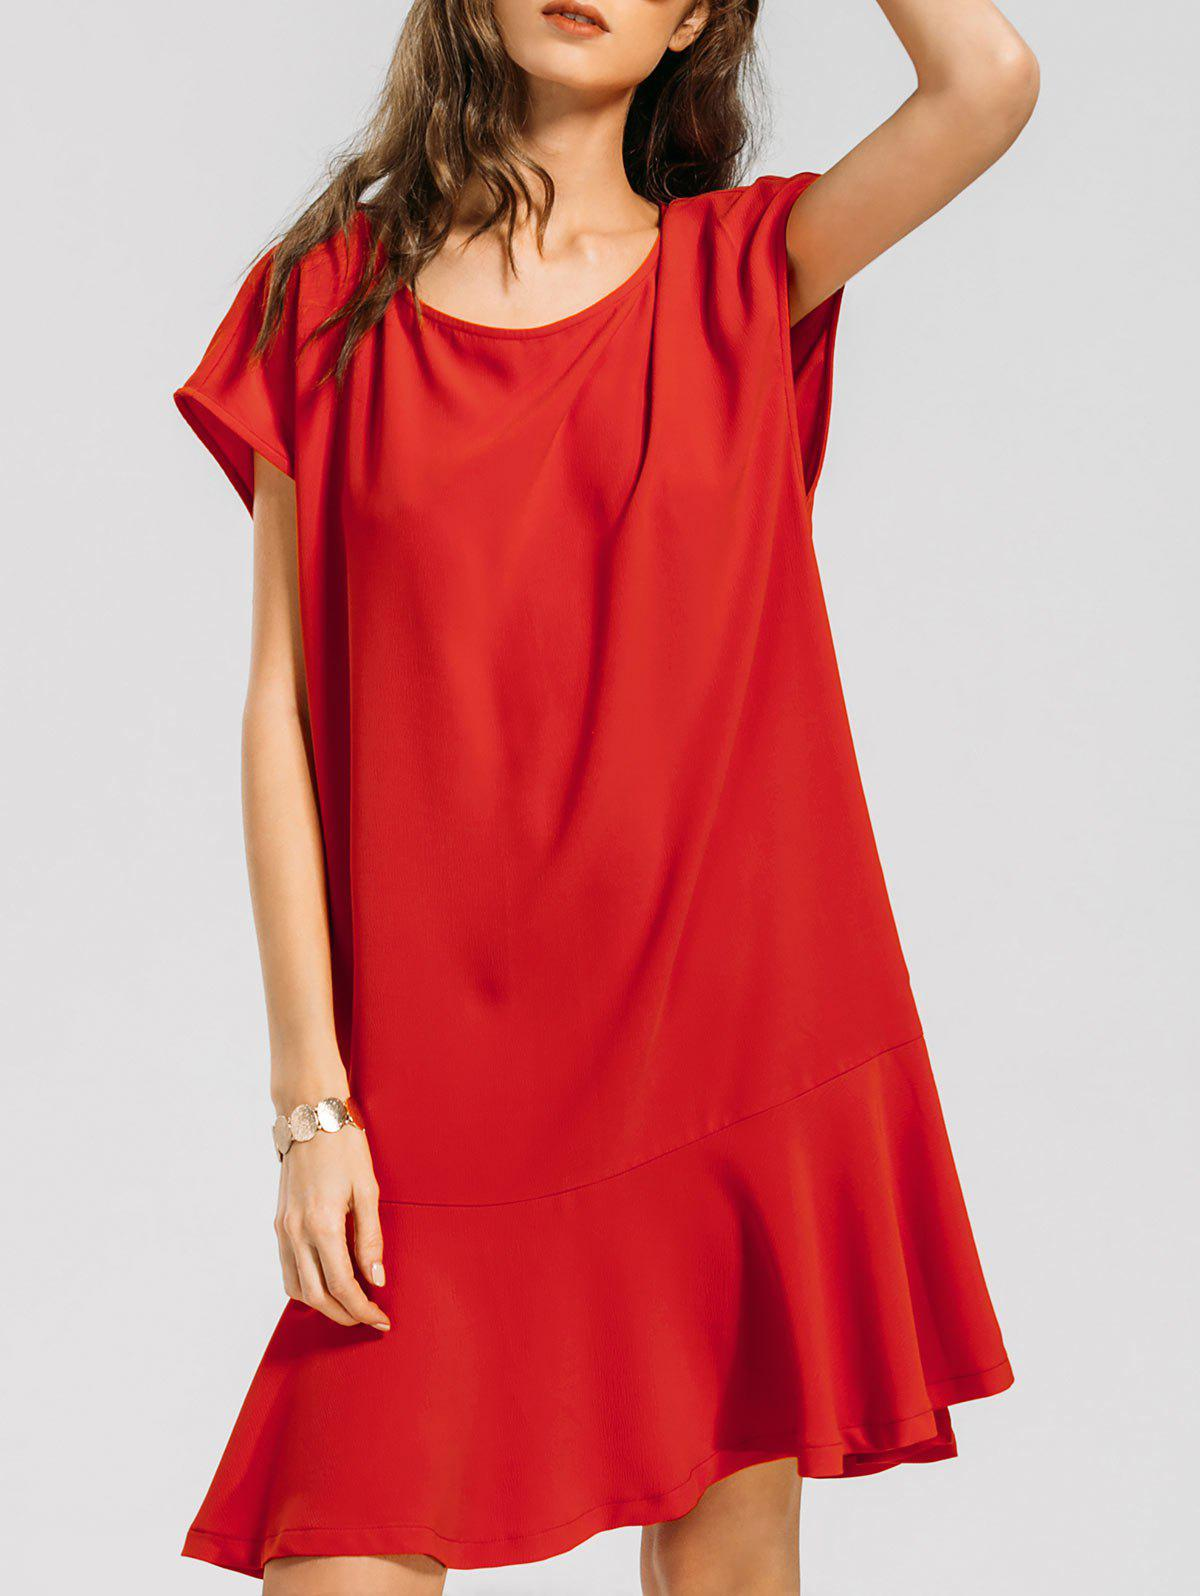 Shops Ruffled Hem Cap Sleeve Casual Dress